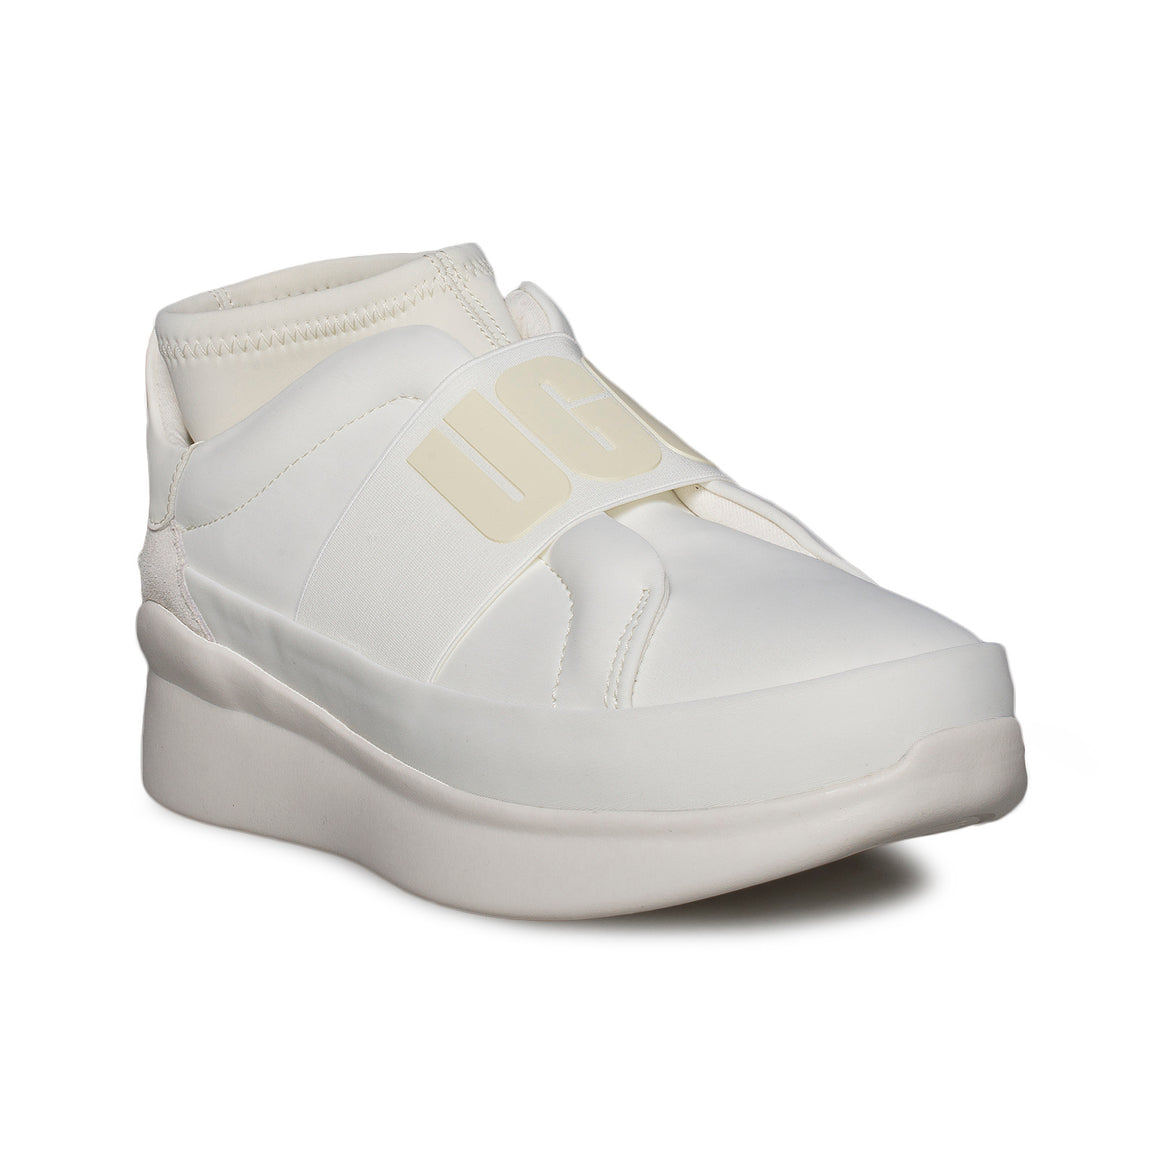 UGG Neutra Coconut Milk Sneakers - Women's